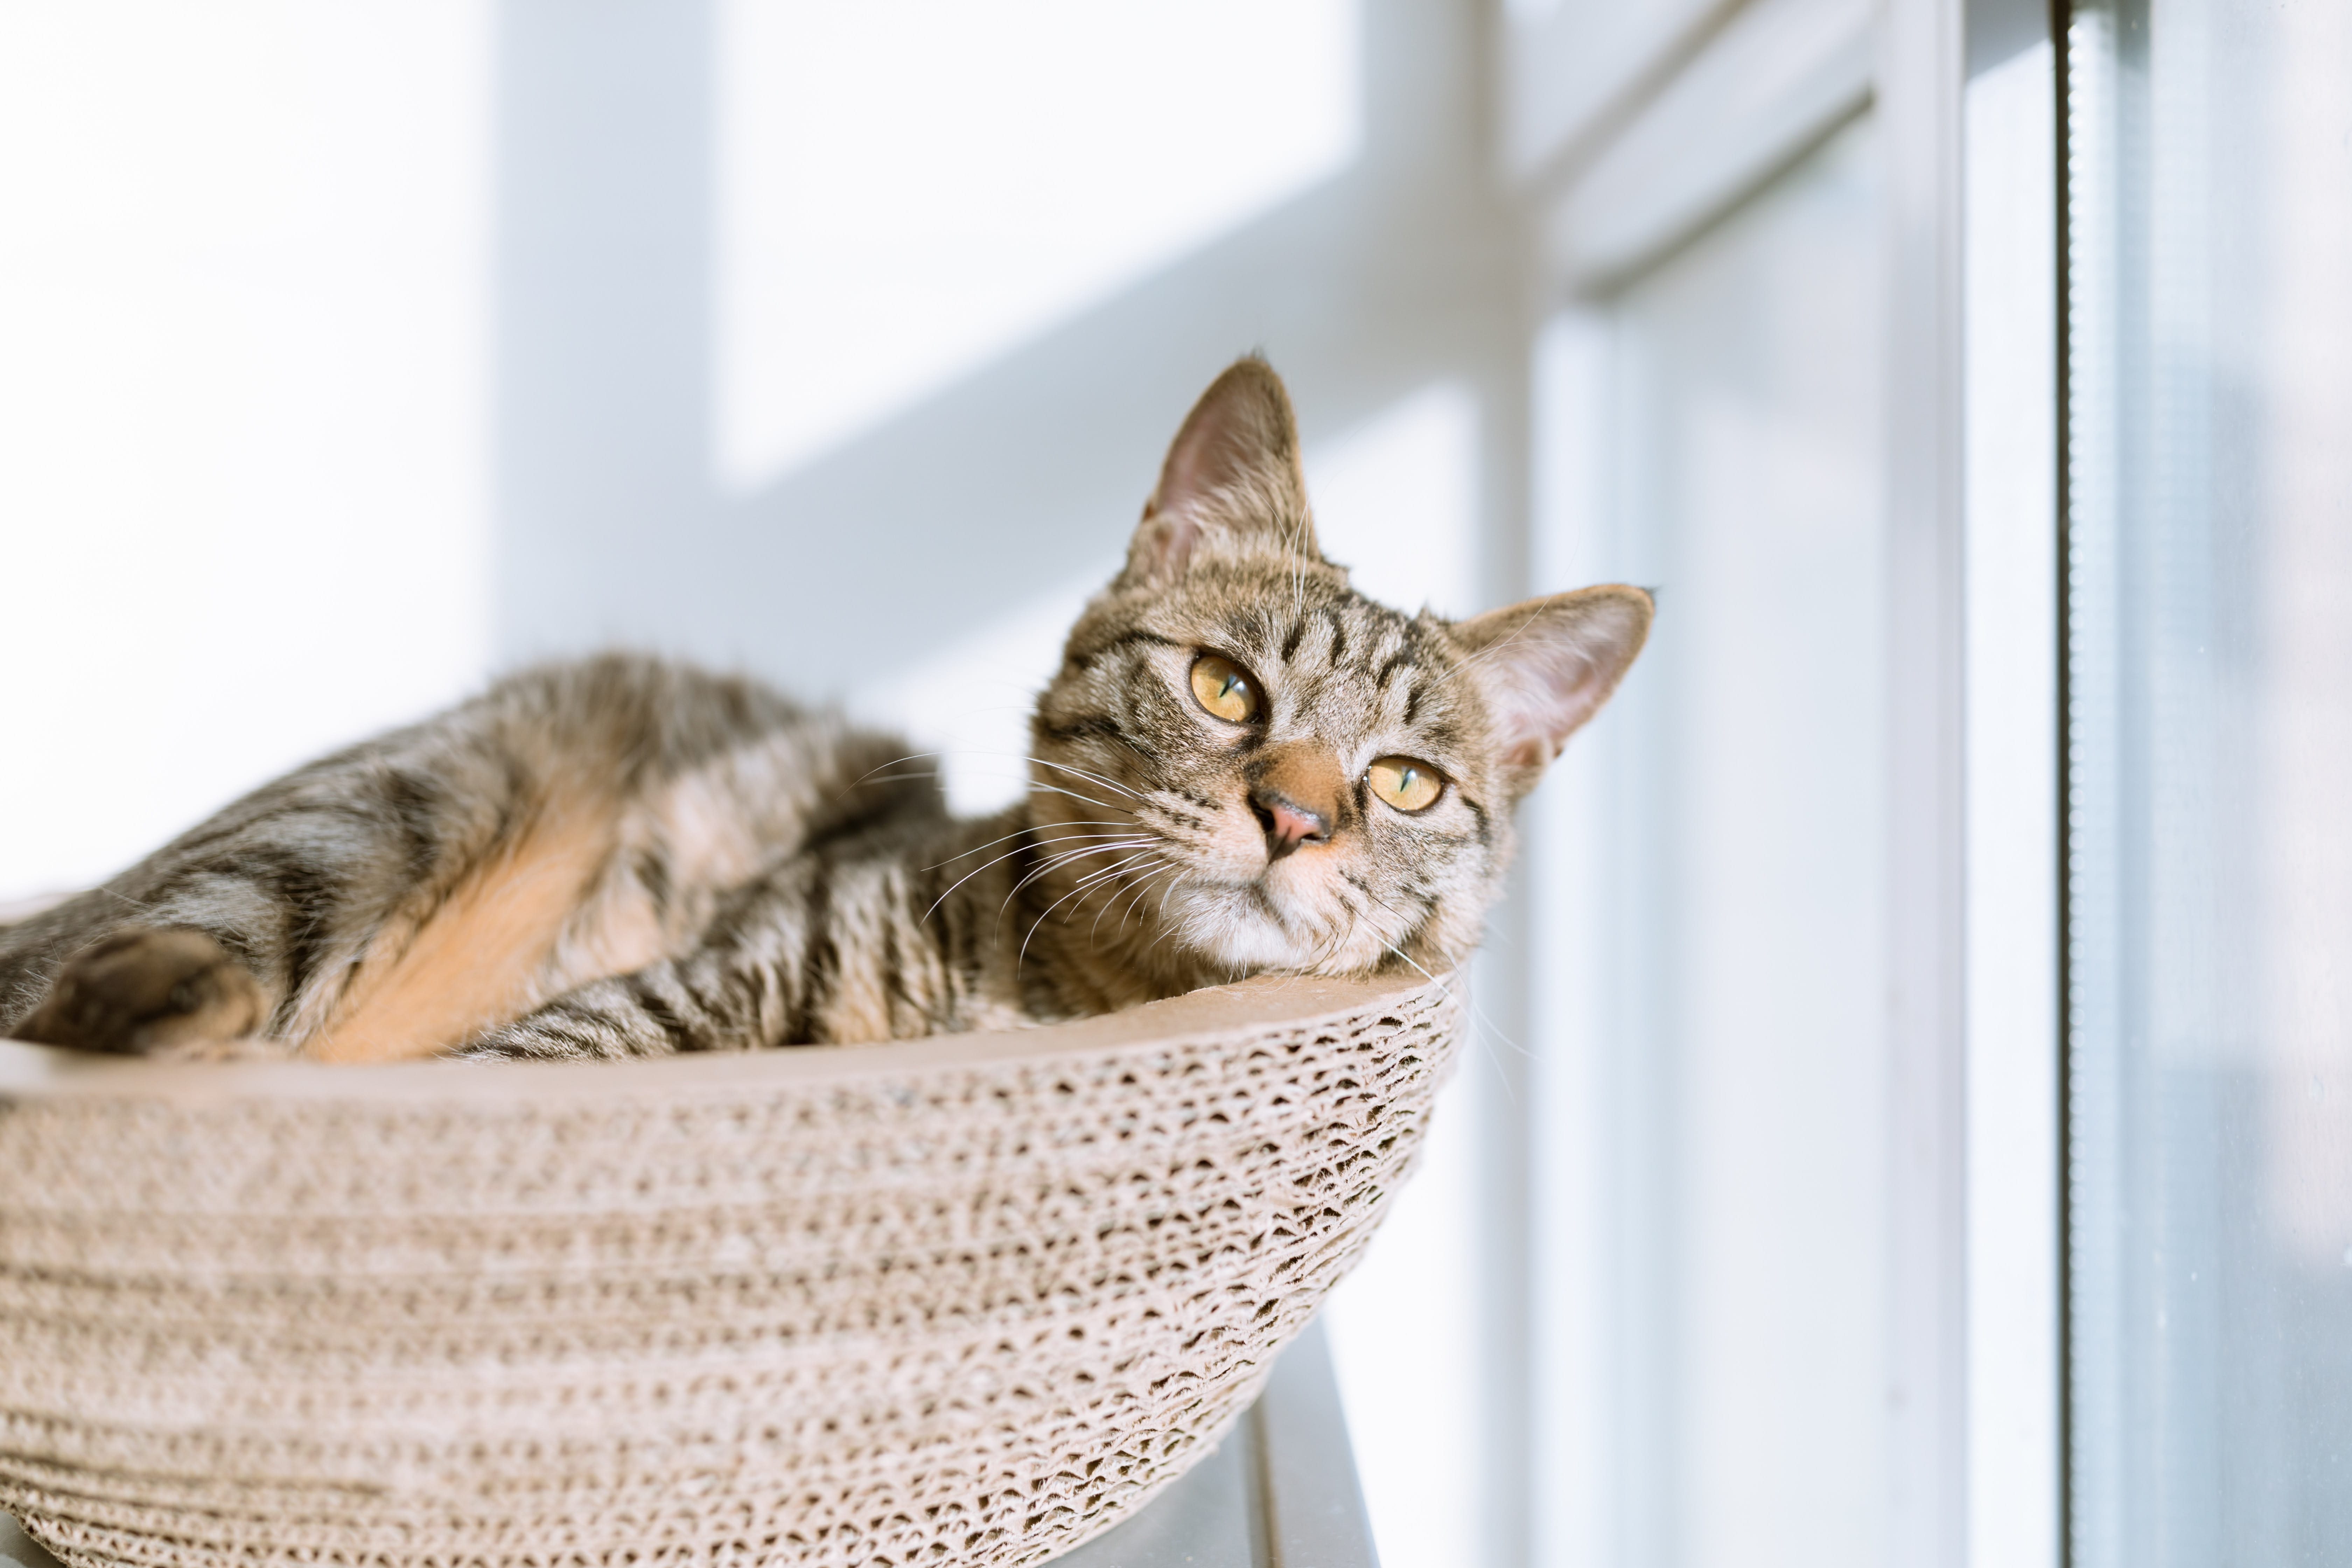 Silver tabby cat on gray pillow beside clear glass window; image by Eric Han, via Unsplash.com.